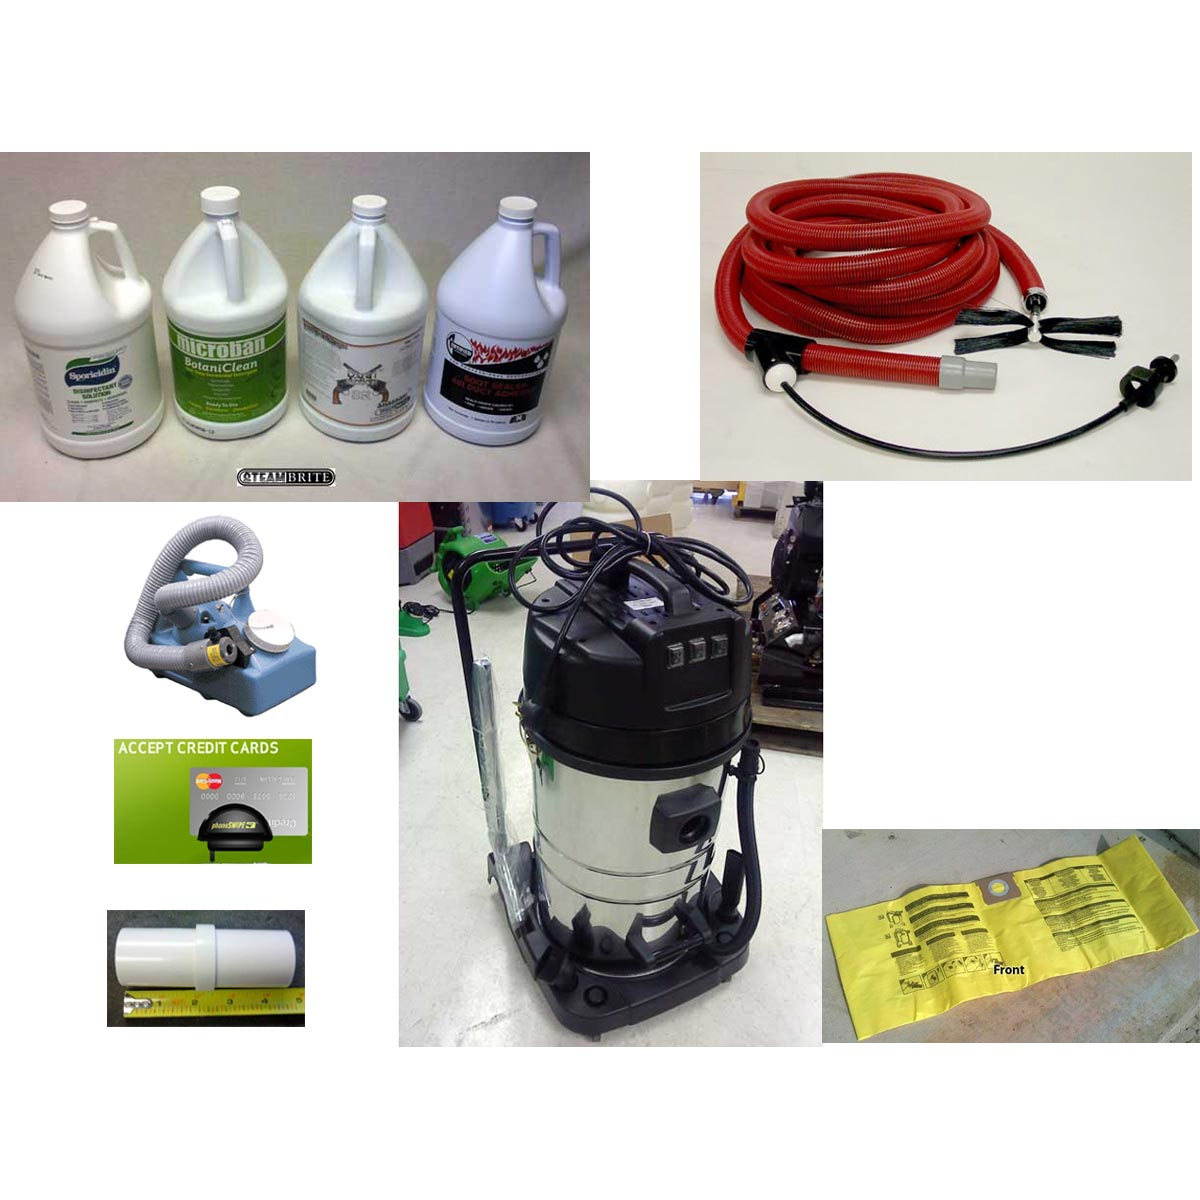 Air Care Cable Drive Starter Package with HEPA Triple Motor Vacuum